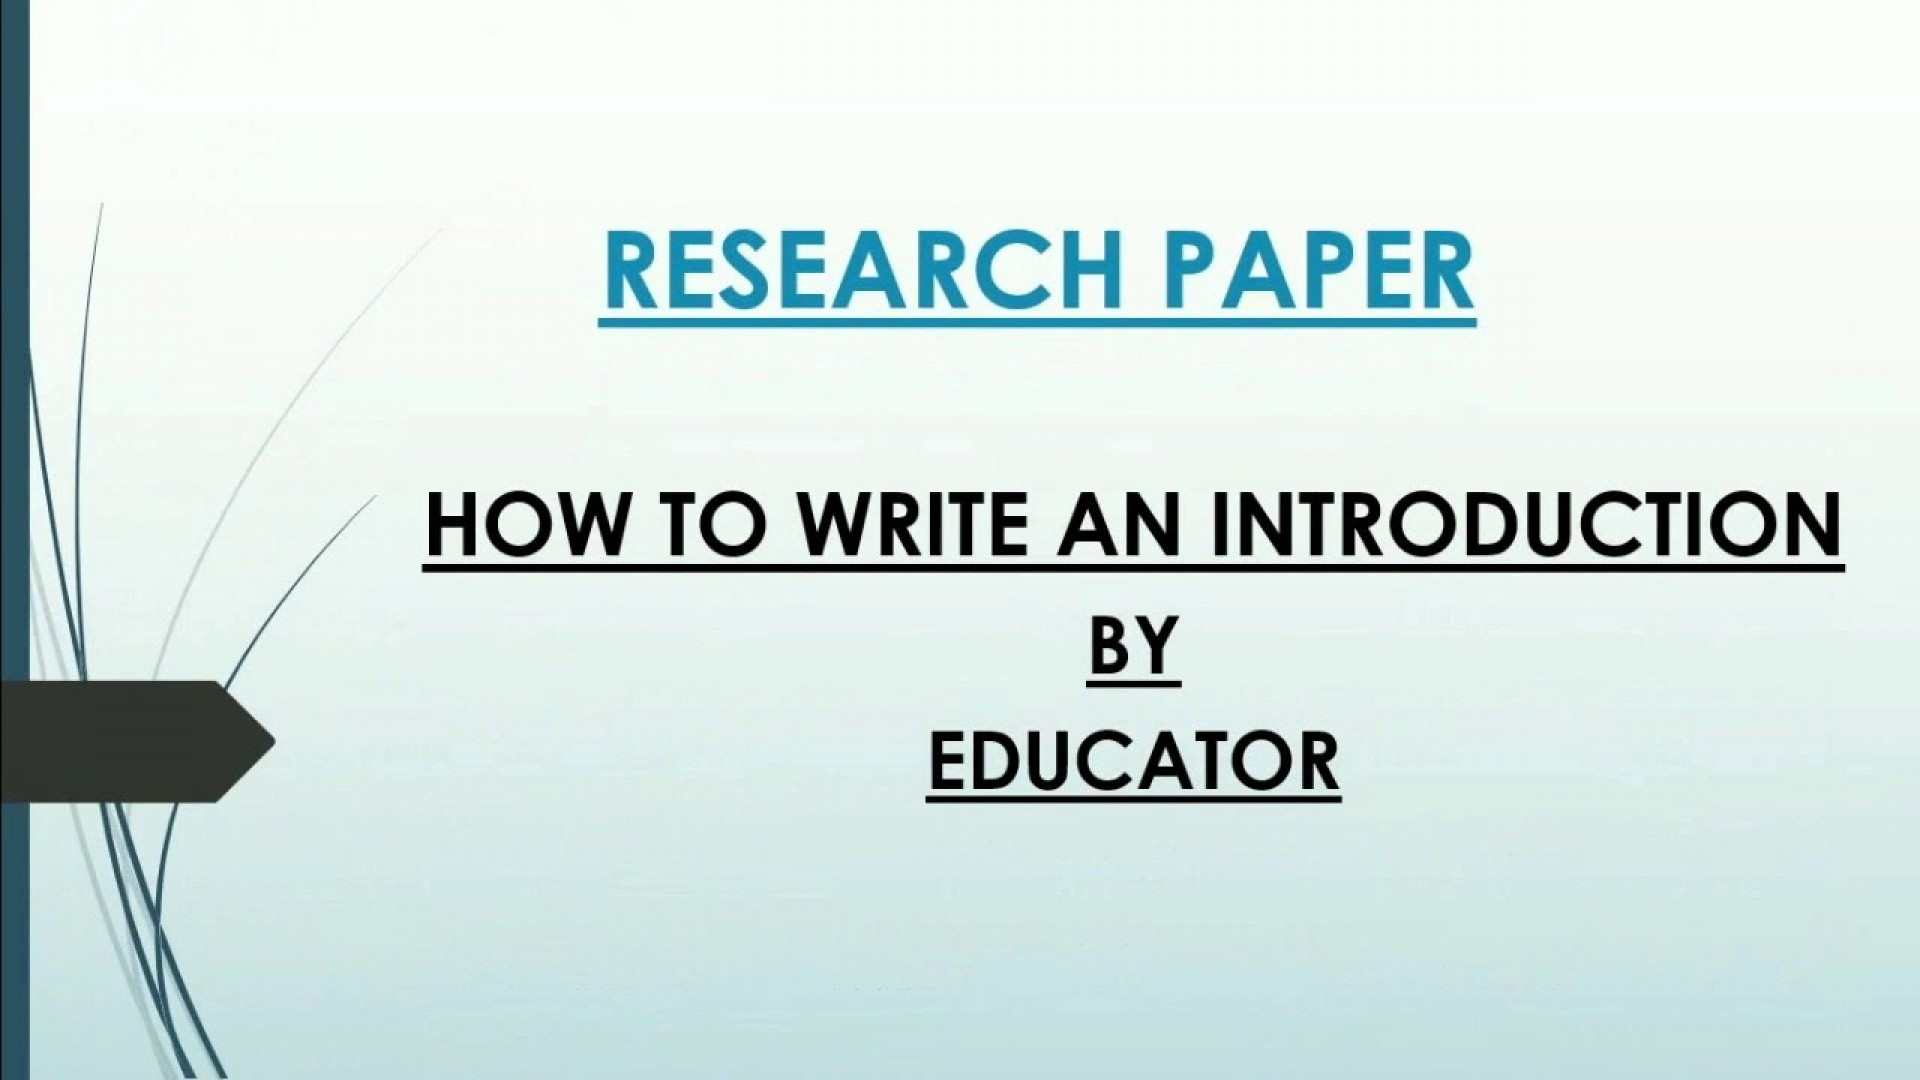 007 Research Paper Writing Introduction Striking A Scientific Tips For How To Write An Sample Pdf 1920